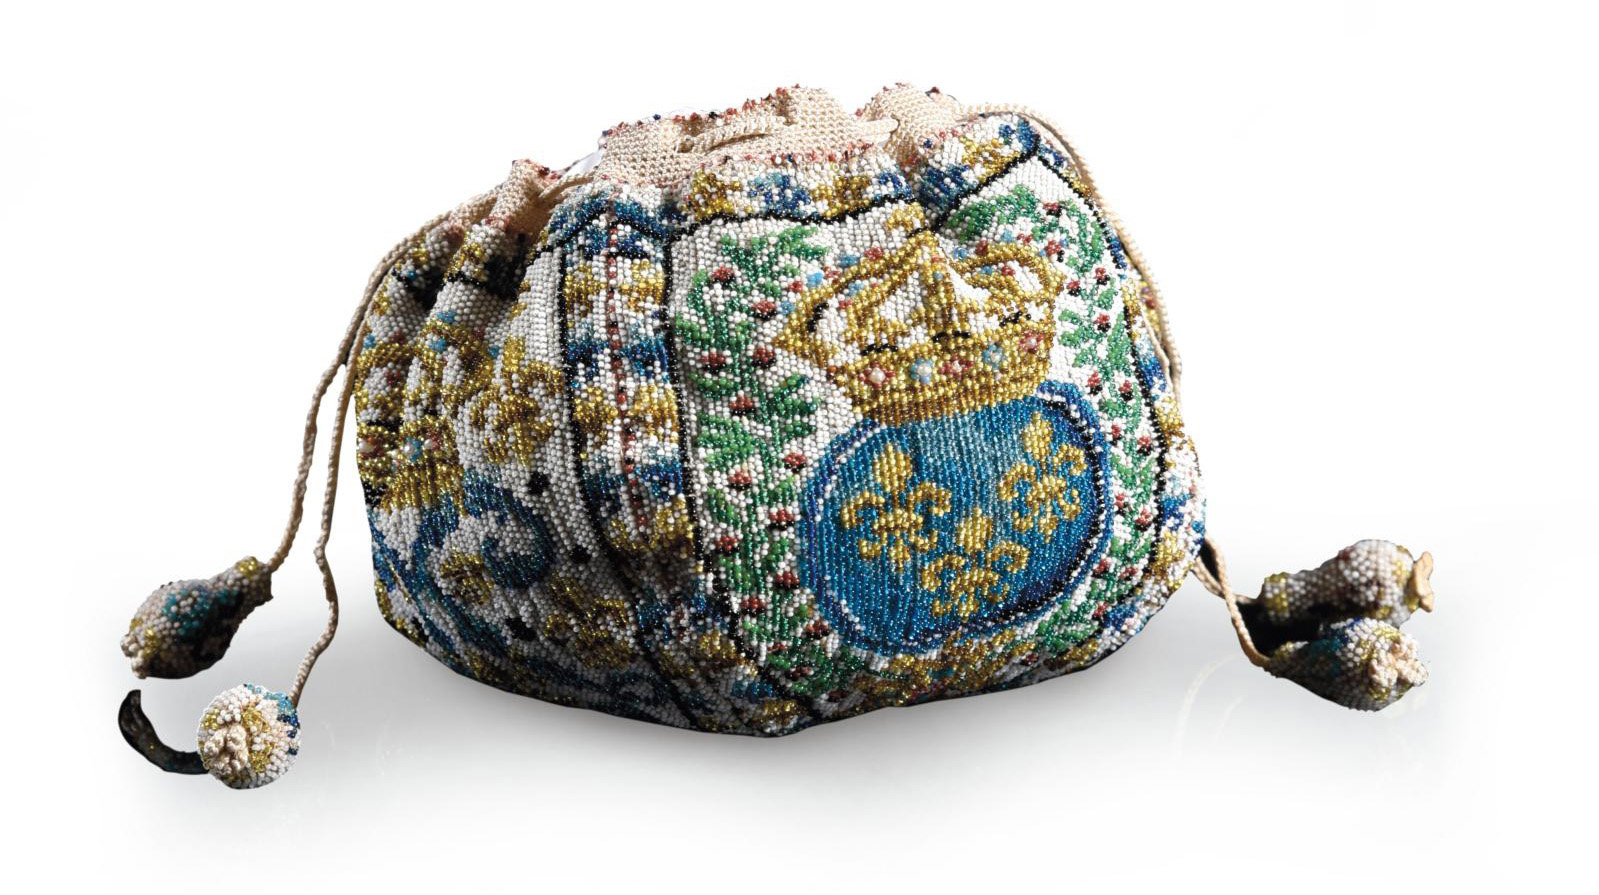 Late 18th-century French work, made for Louis XVI, king of France, Polychrome beaded purse with an ivory background, decorated with France